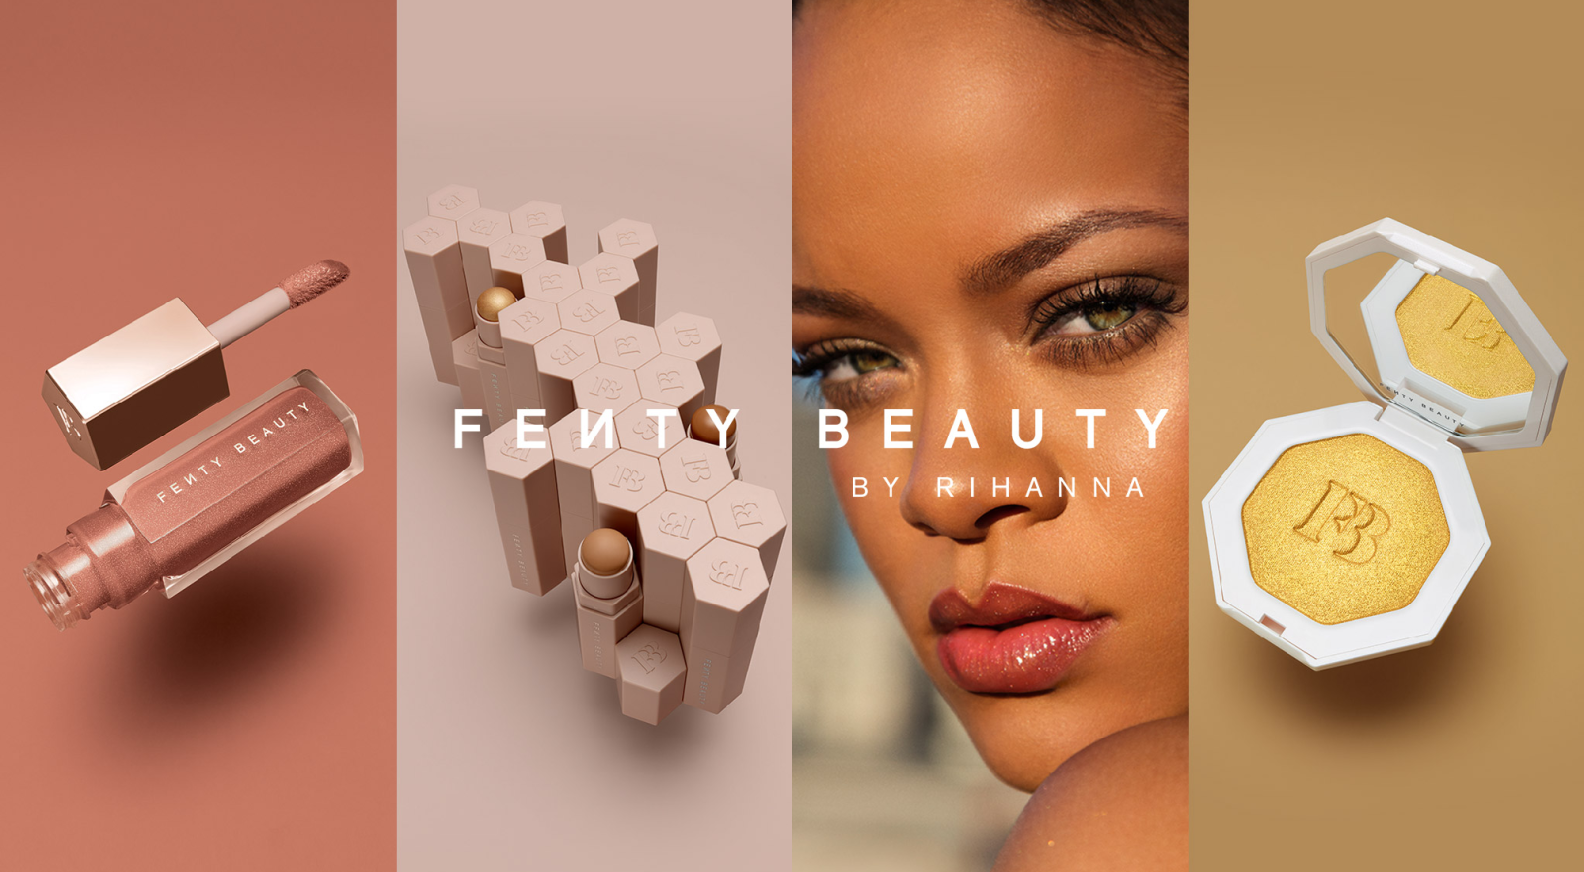 Rihanna Launches Fenty Beauty By Rihanna Makeup Brand With Sephora